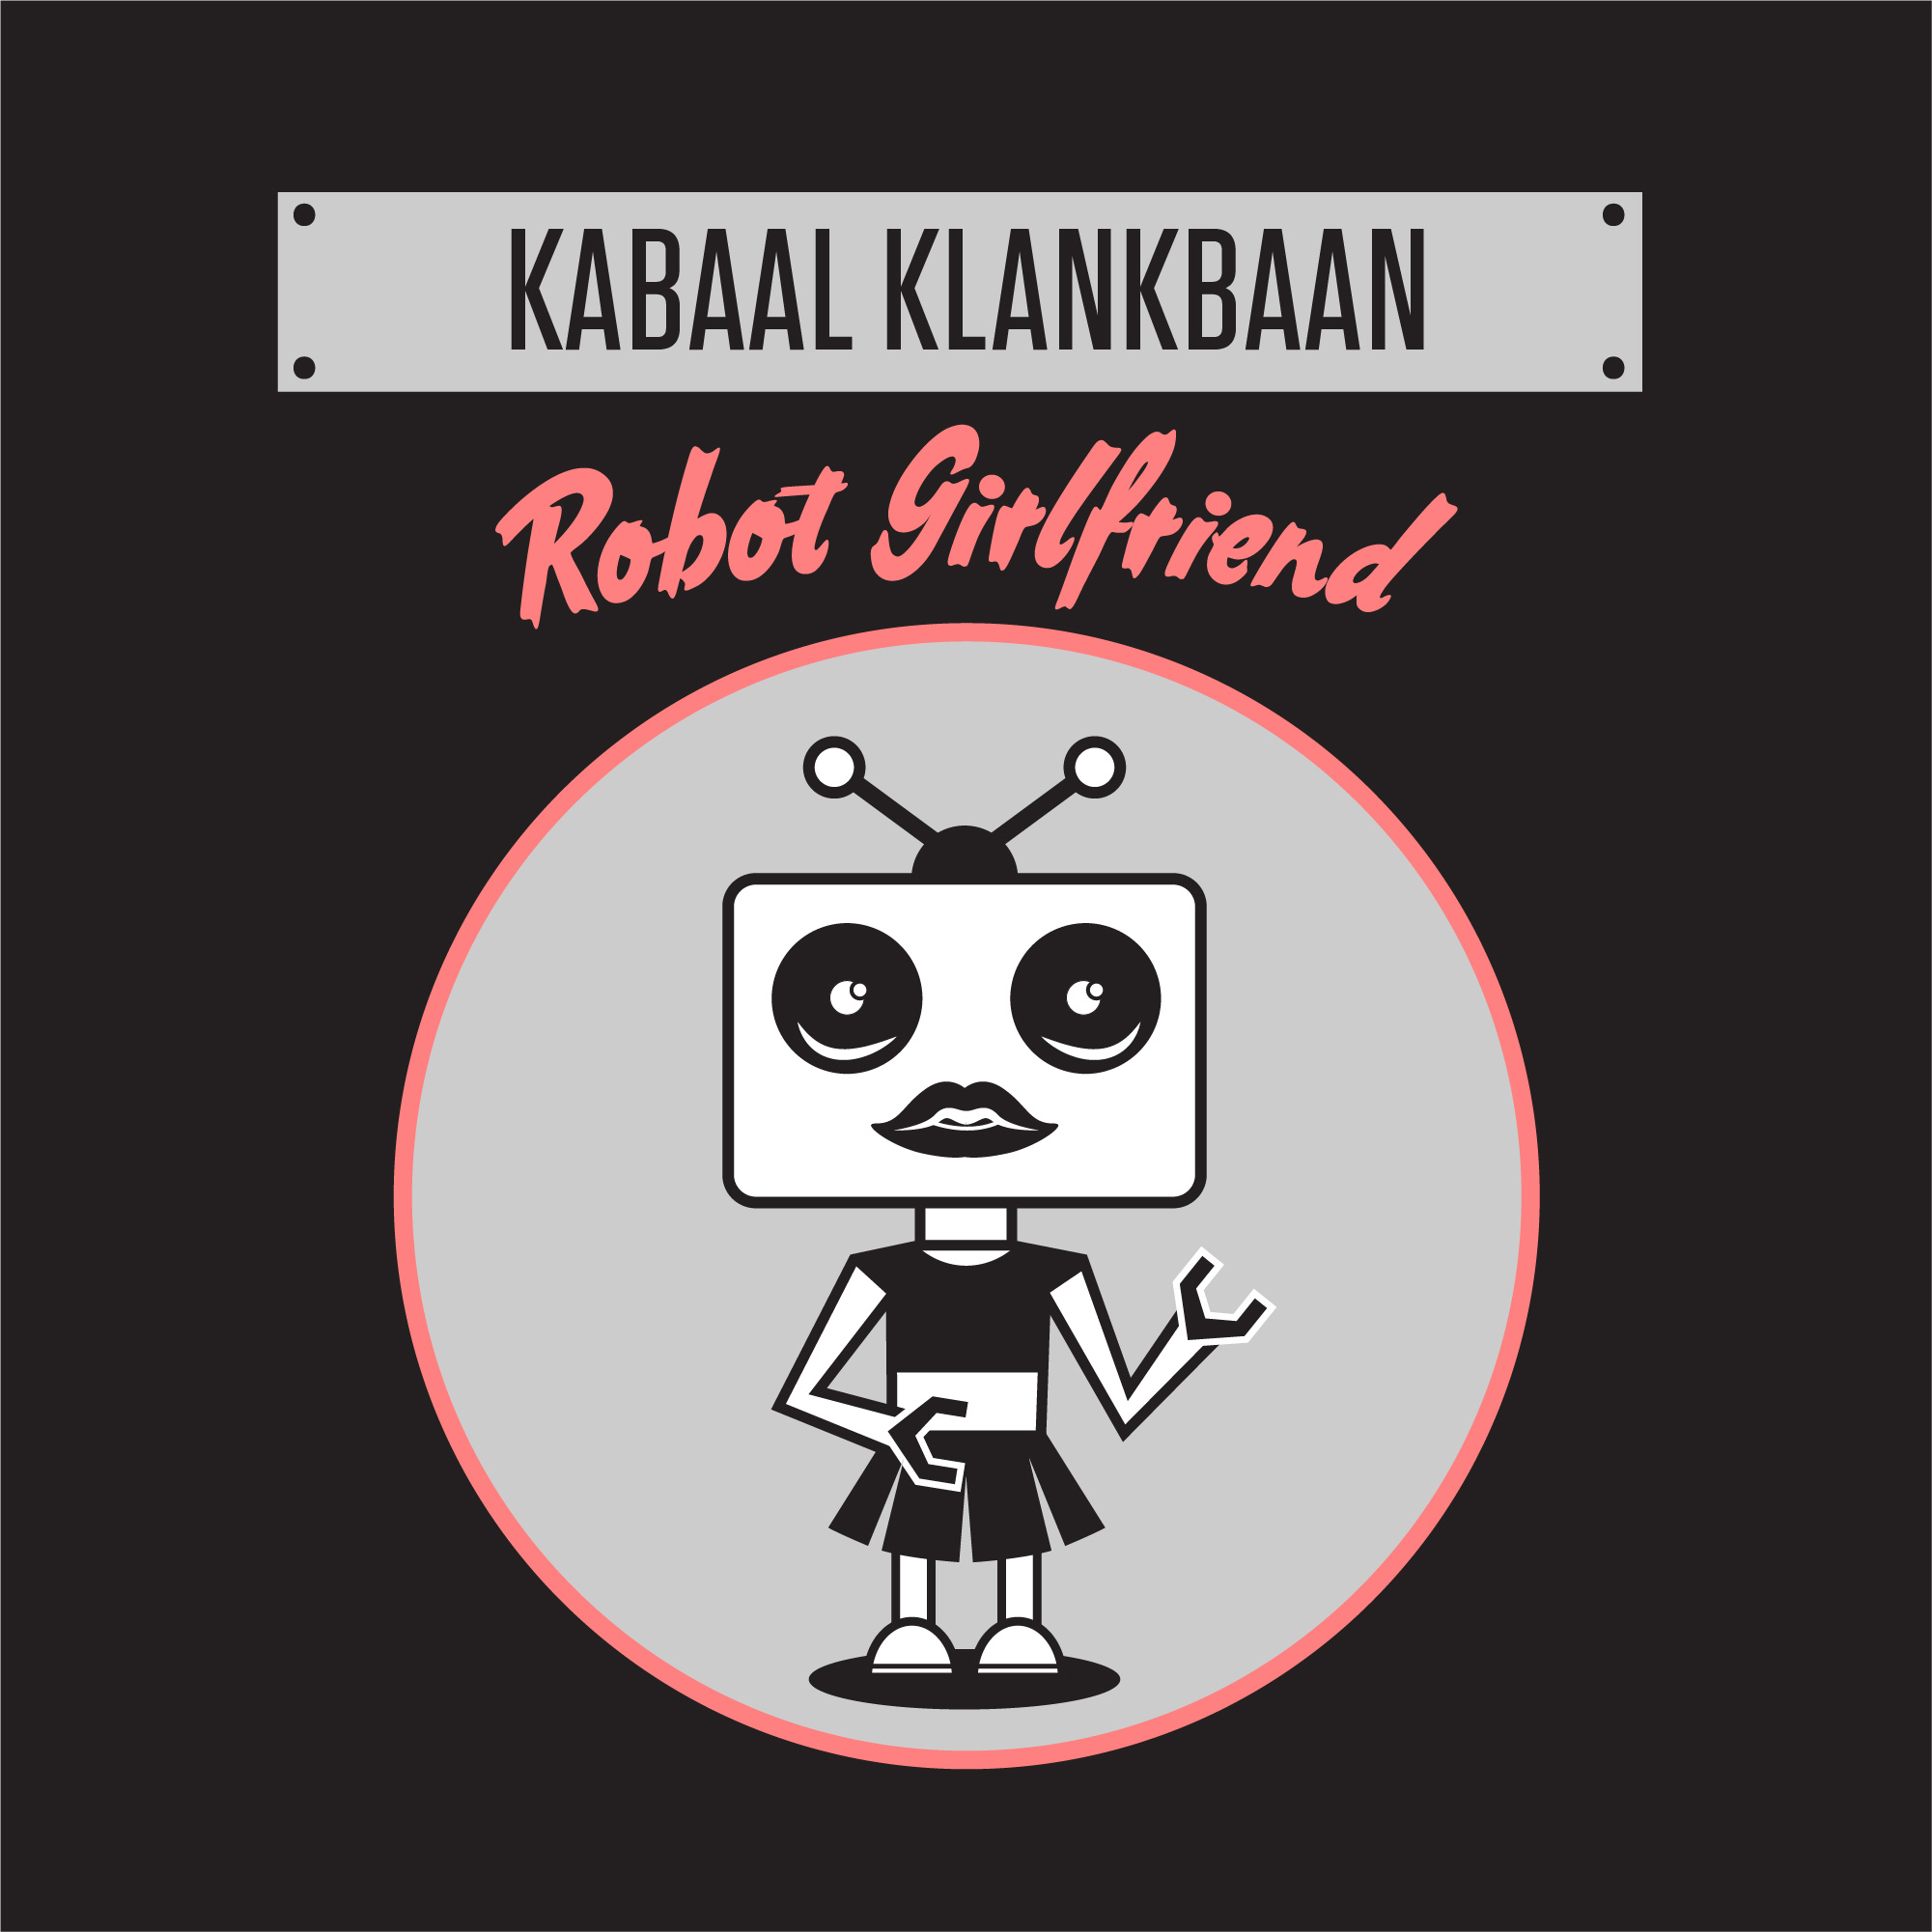 Love In The Time Of The Robot Uprising – Kabaal klankbaan releases Robot Girlfriend